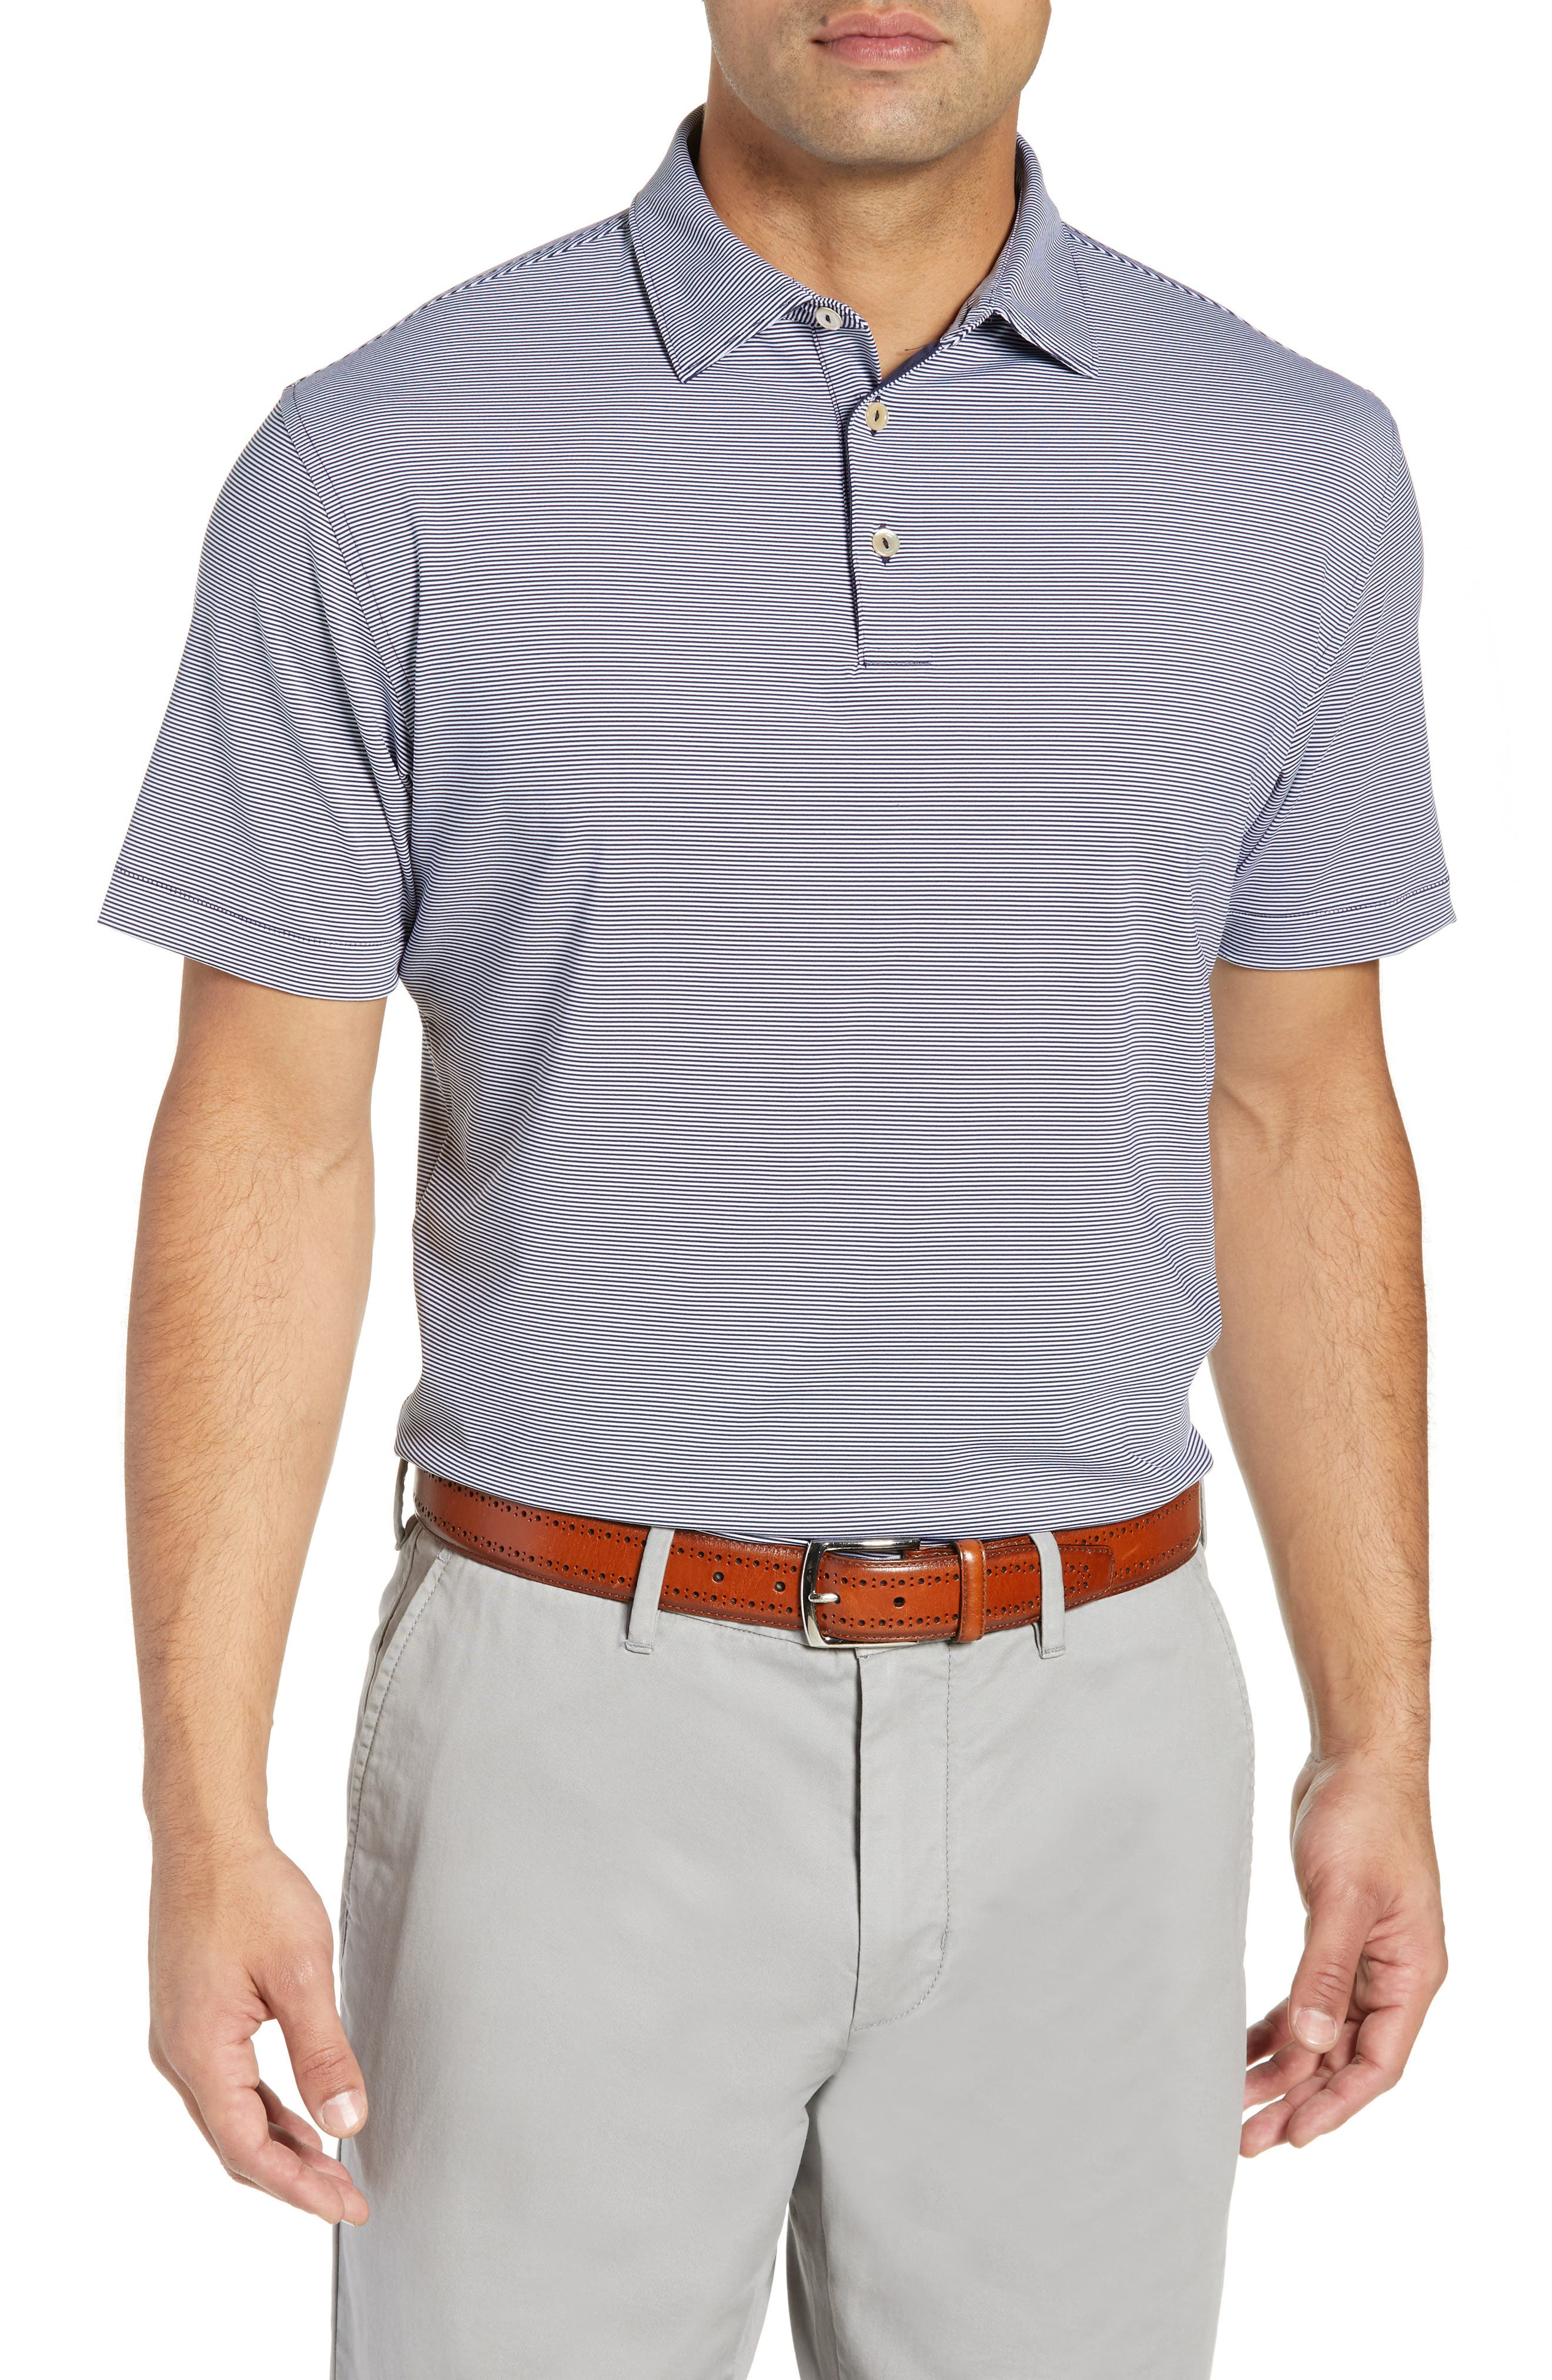 Jubilee Stripe Stretch Jersey Performance Polo,                             Main thumbnail 1, color,                             BLUE